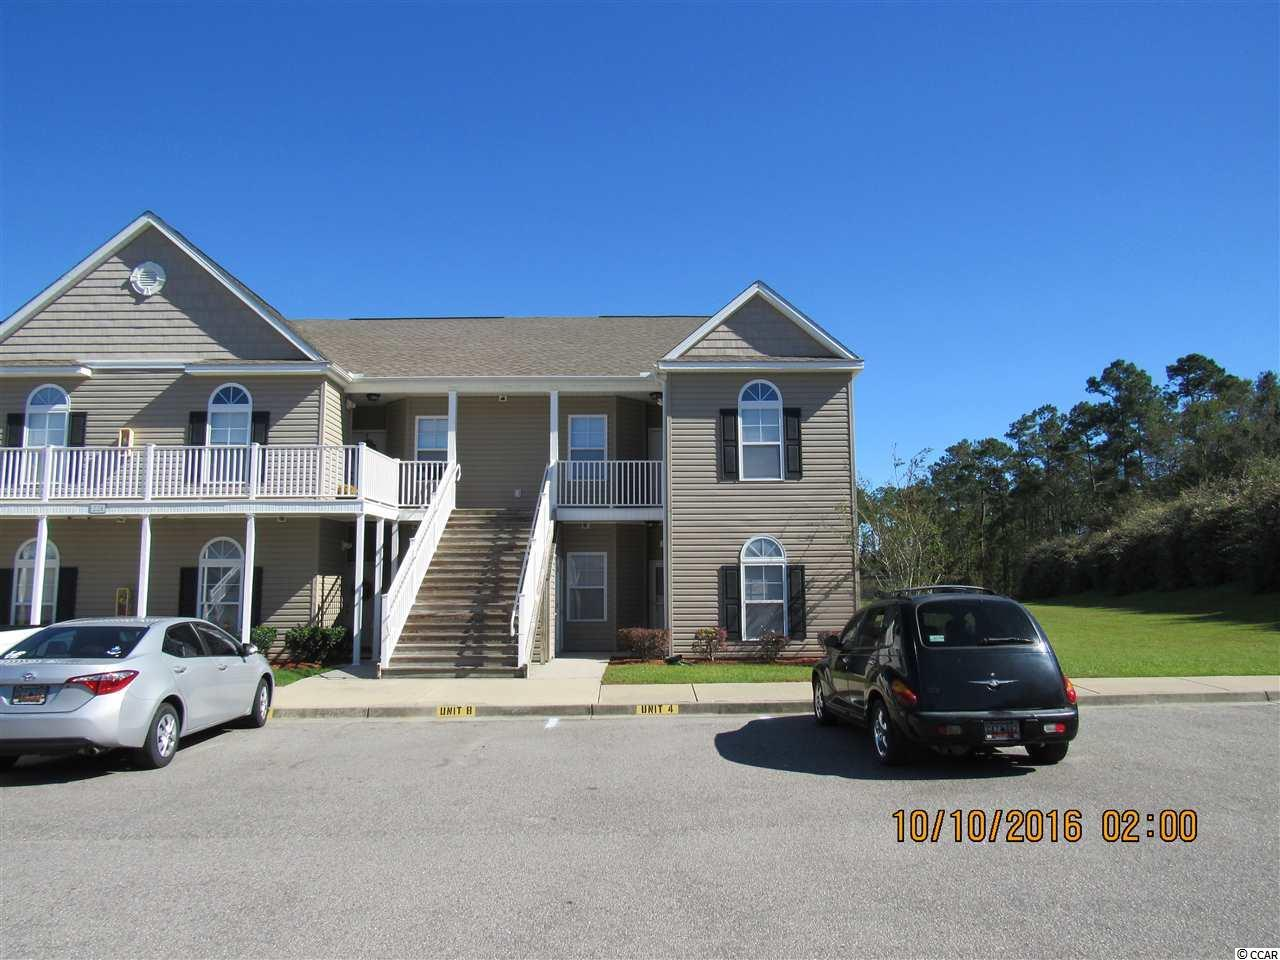 221 Portsmith Dr Myrtle Beach Sc Mls 1721577